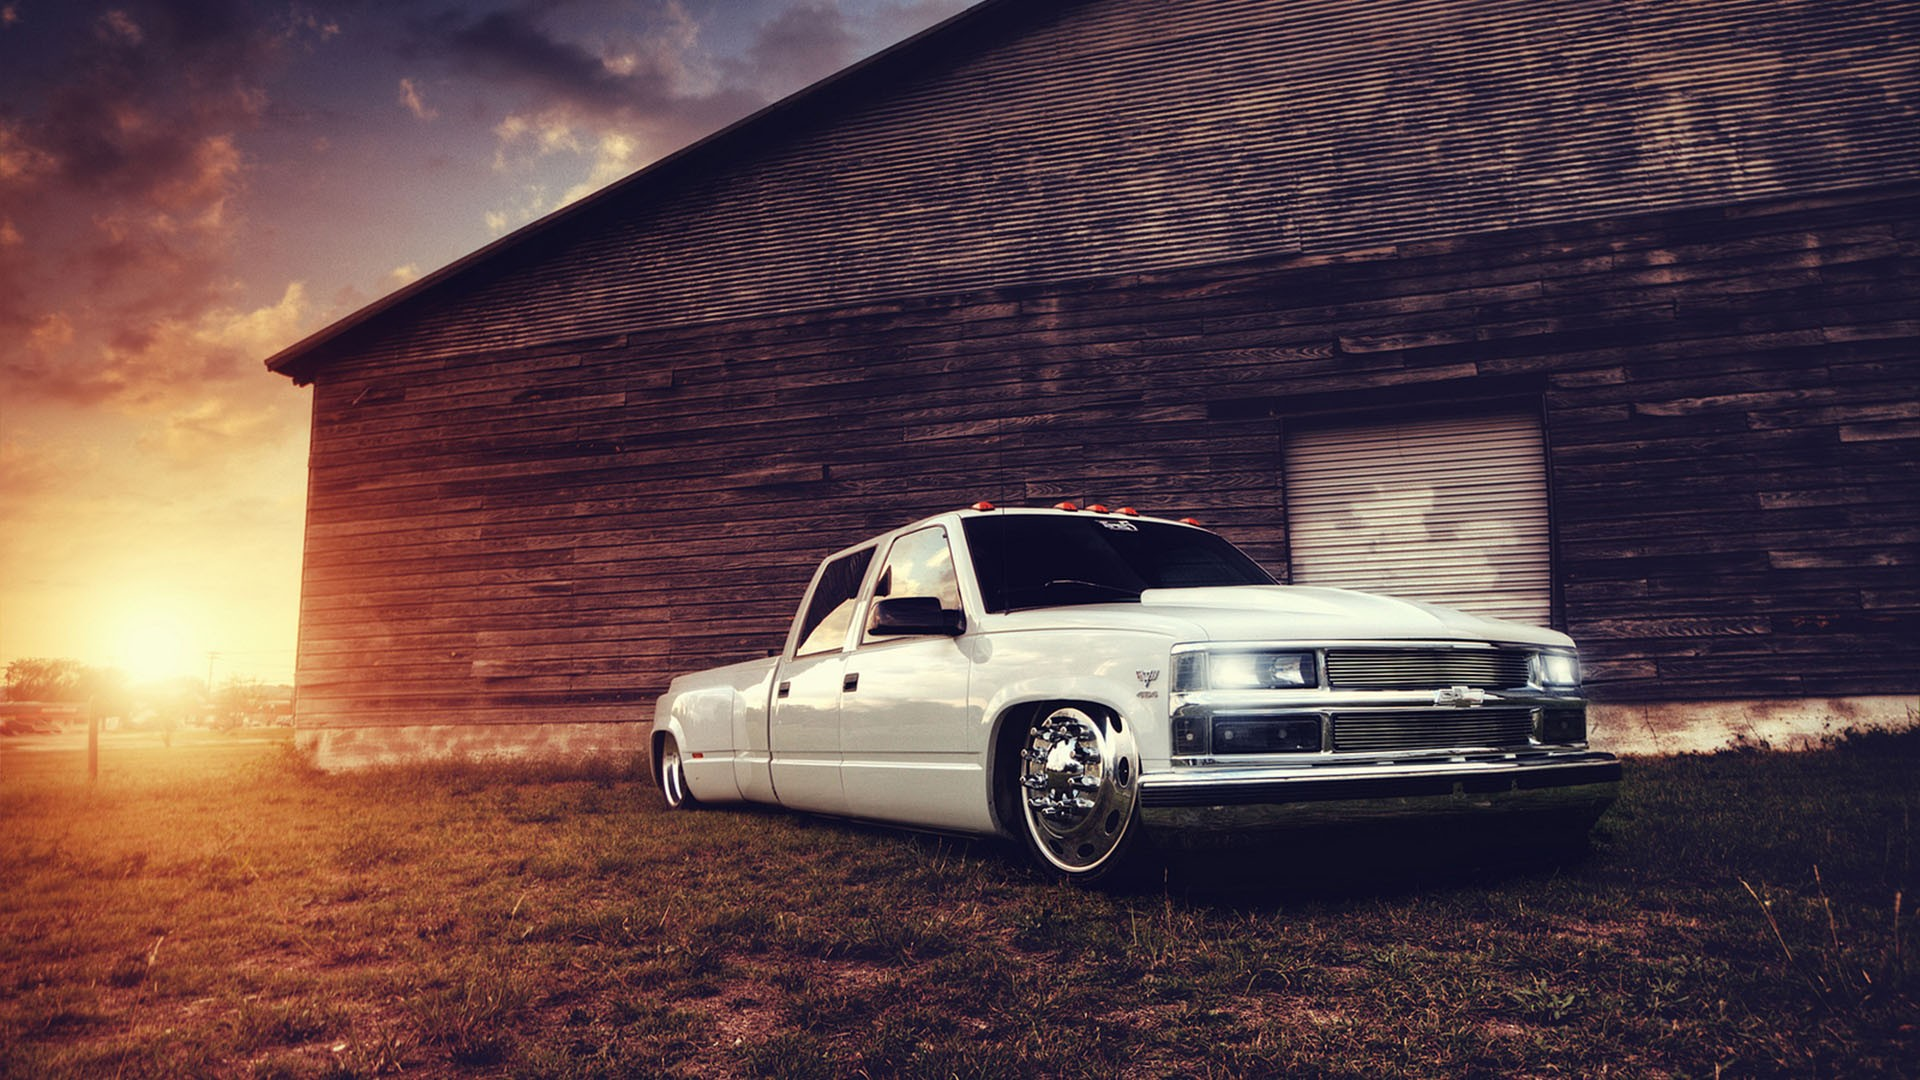 3 Chevy Truck HD Wallpapers Backgrounds 1920x1080